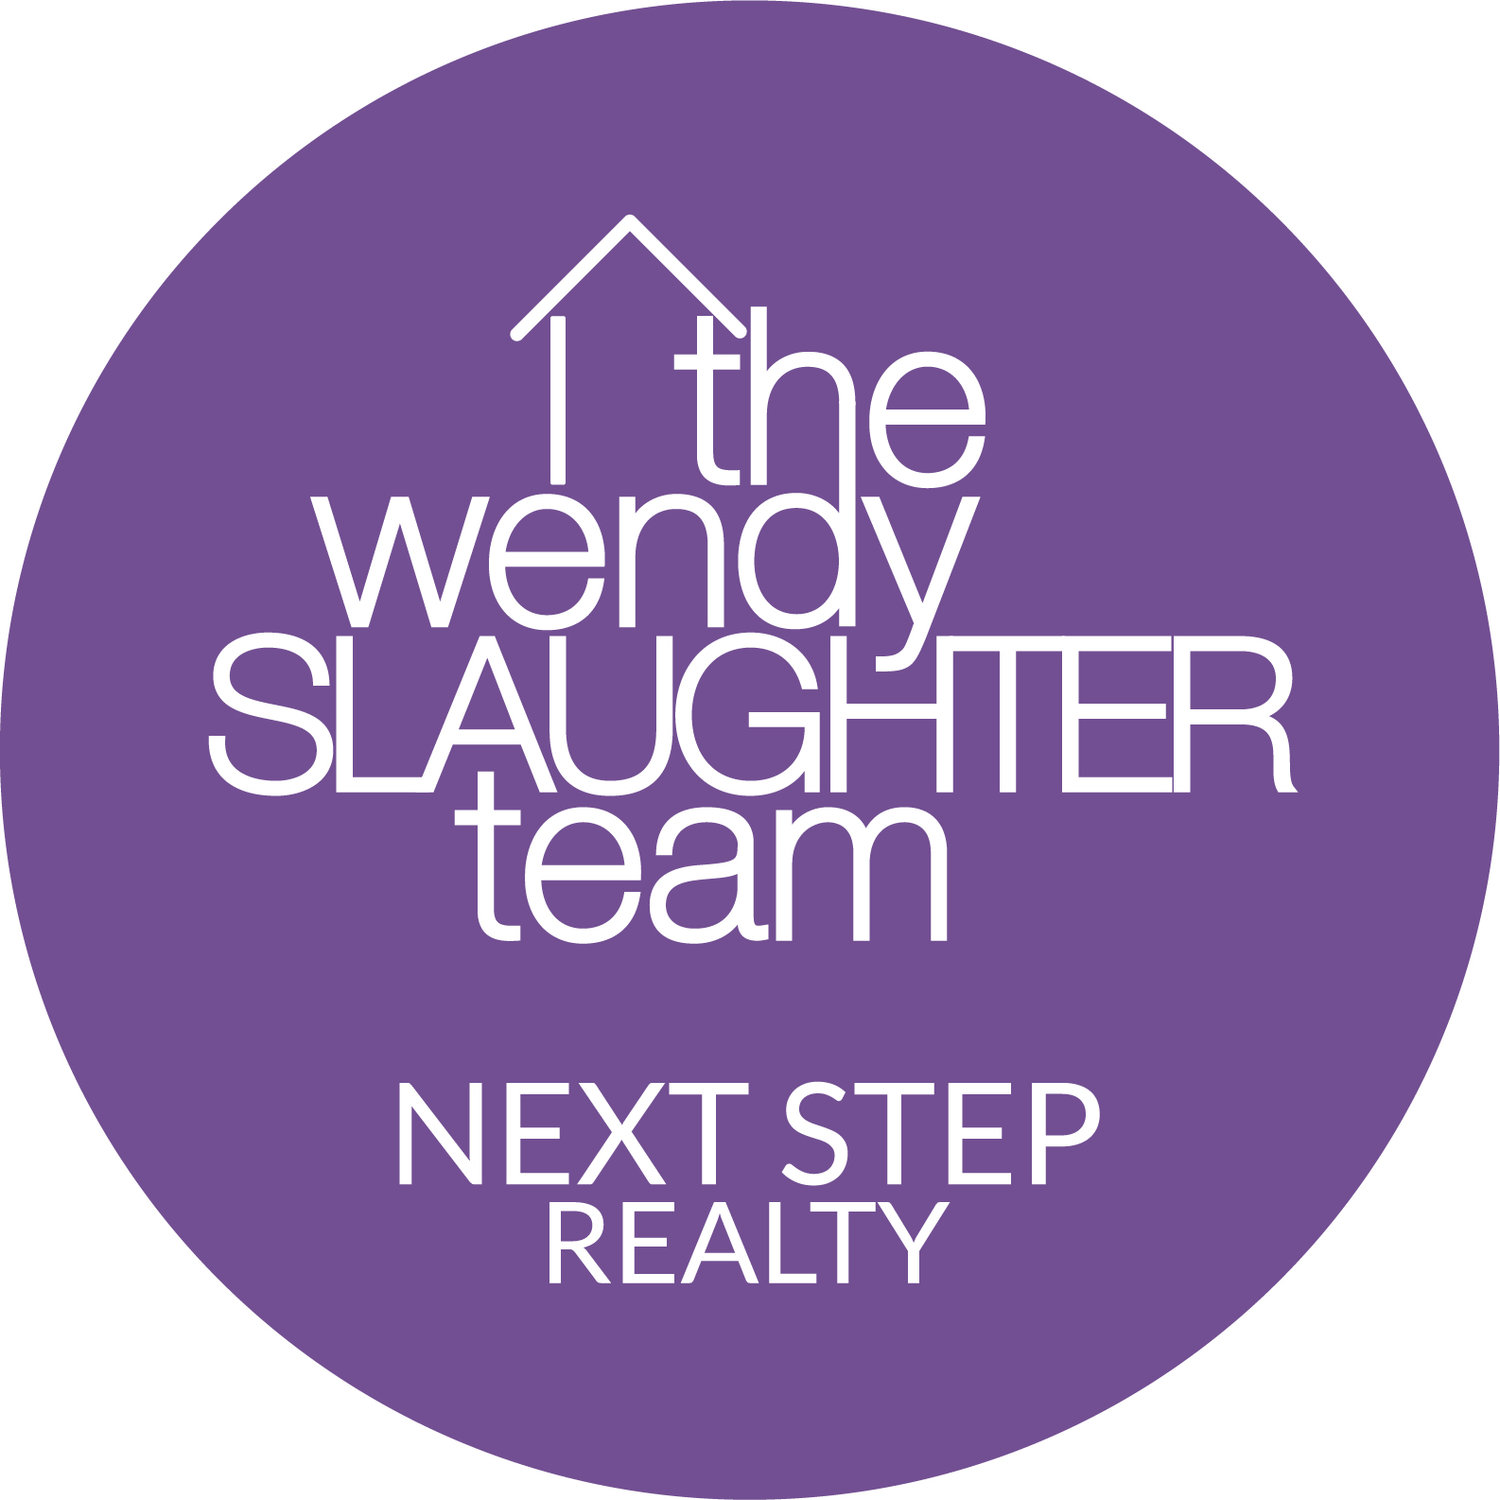 The Wendy Slaughter Team at Next Step Realty